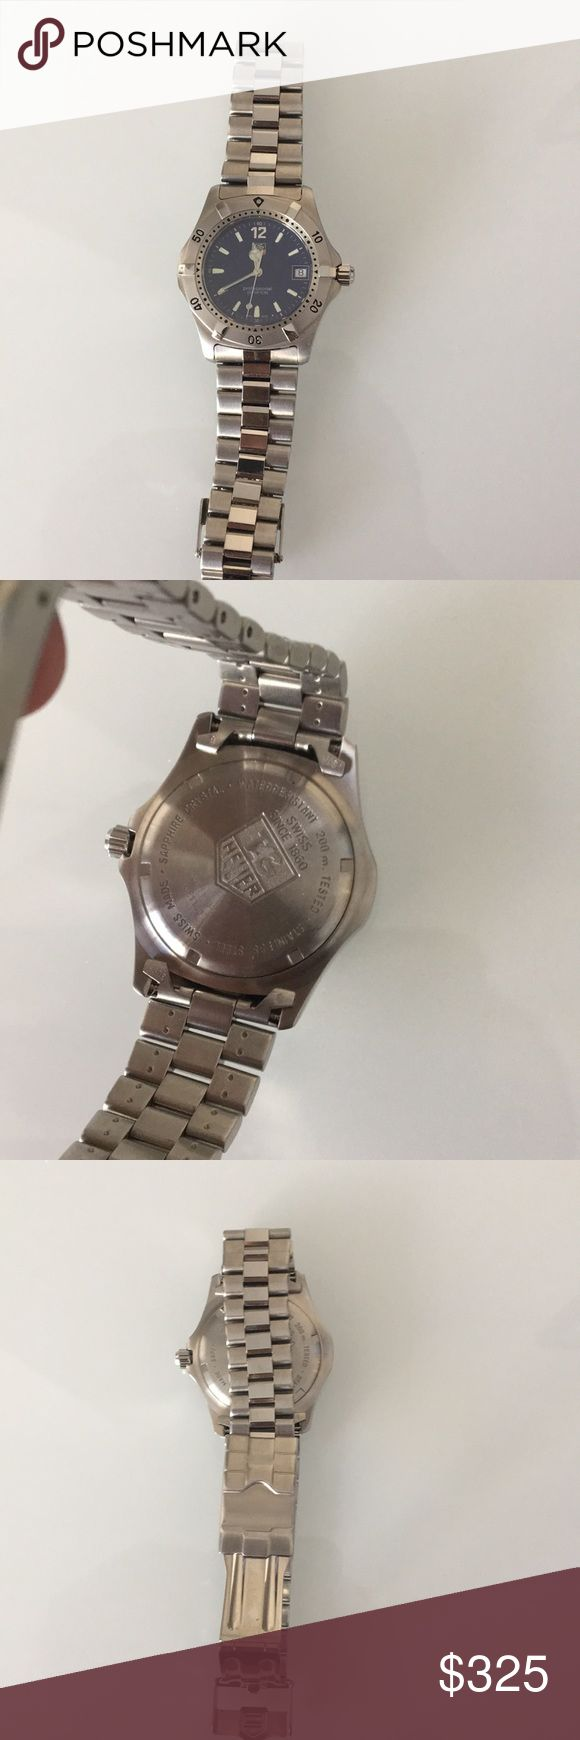 Men's Tag Heuer professional watch no scratches Beautiful Tag Heuer men's watch barely worn. Authentic needs new battery but has zero scratches and is a beautiful present. Retails at $1650 Tag Heuer Accessories Watches